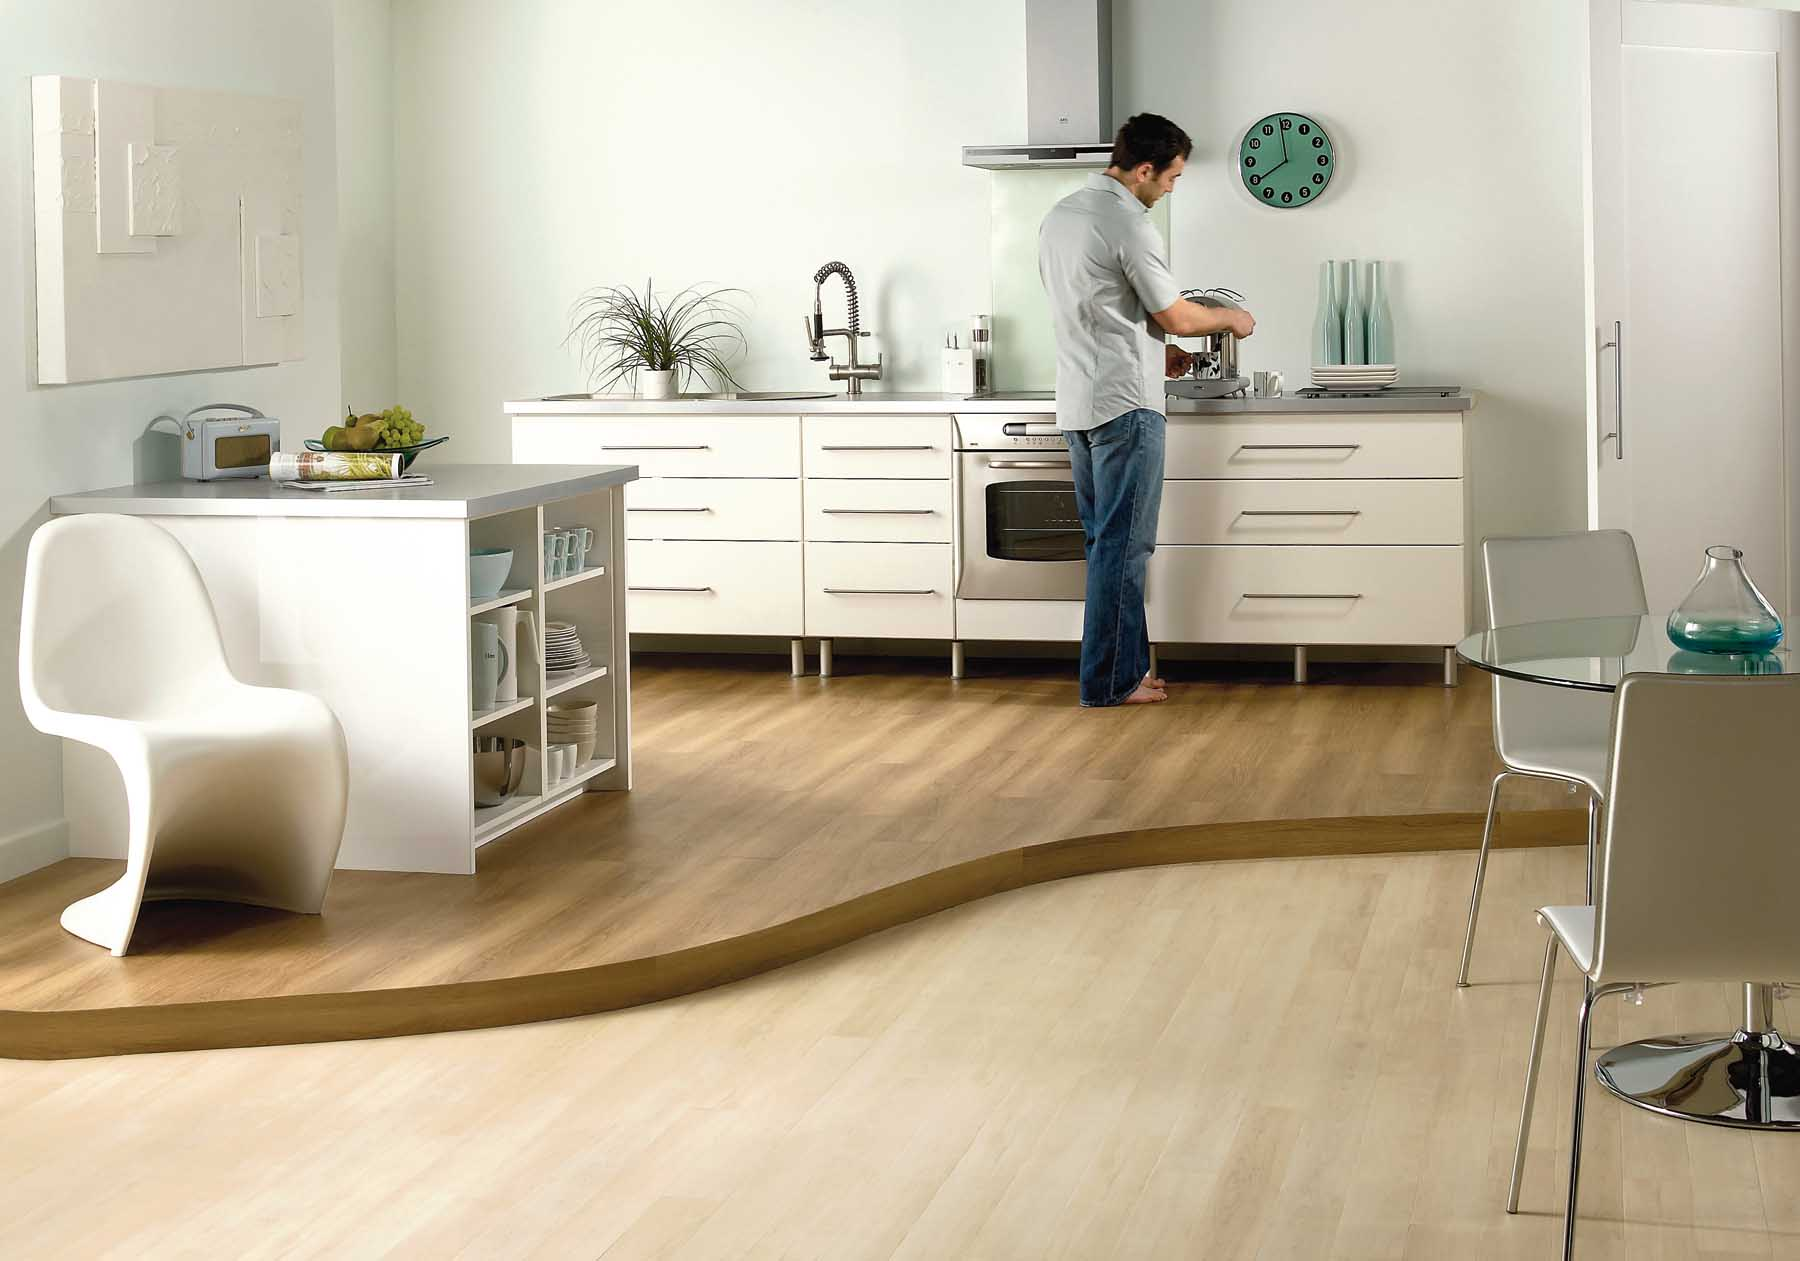 Laminate Flooring In A Kitchen laminate flooring in a kitchen amazing kitchen designs laminate flooring in the kitchen laminate floor Laminate Flooring Kitchen Delivered By Inspire Flooring Aberdeen Where A Man Is Preparing A Cup Of